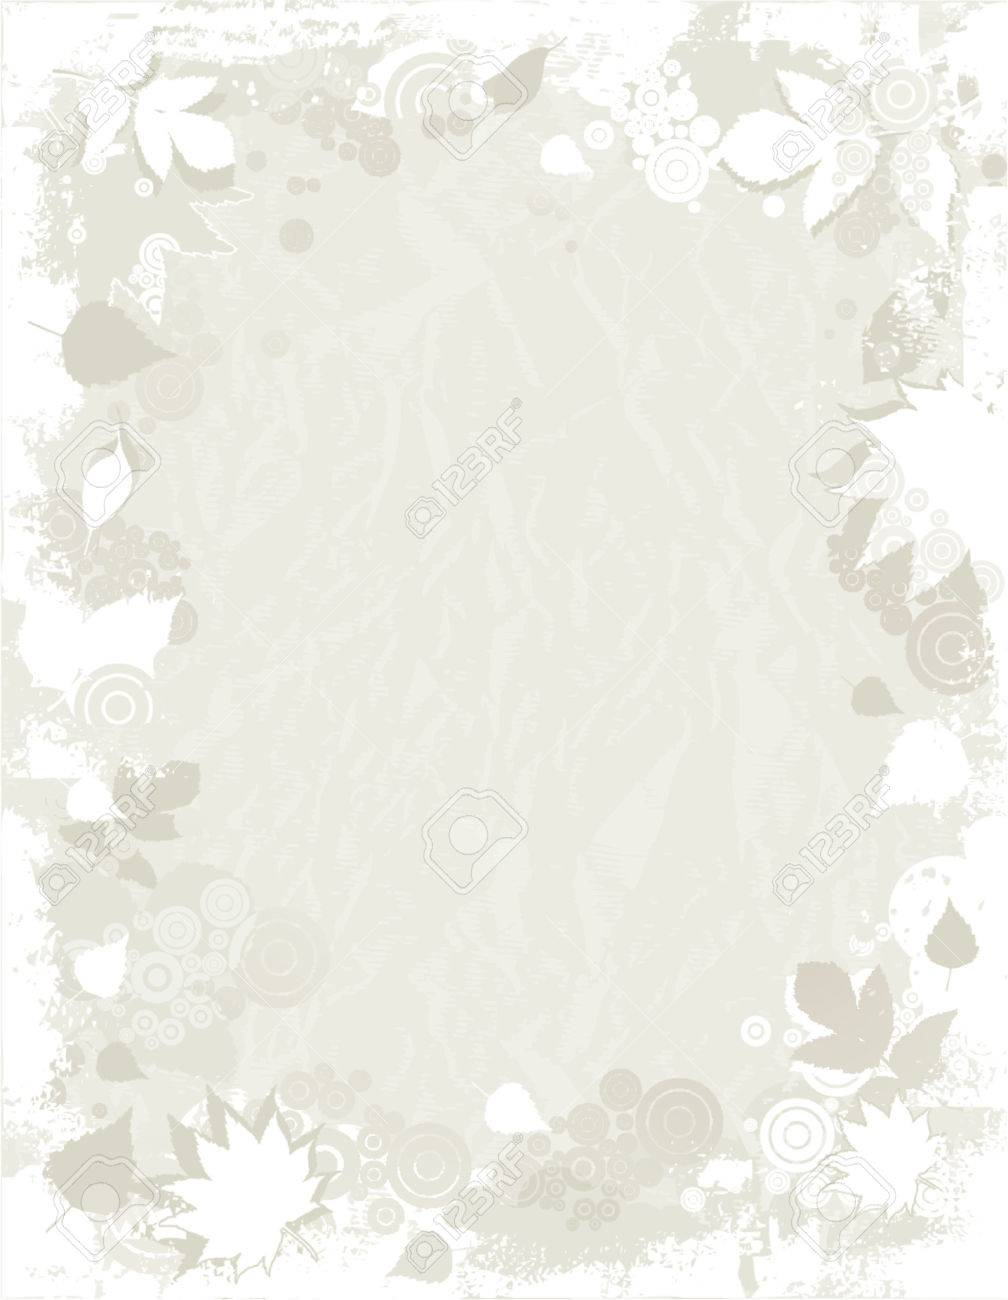 leaf, crop, stem, herb, white, curve, shape, brush, color, plant, stalk, spray, vector, circle, letter, season, design, grunge, nature, natural, graphic, drawing, contour, clipart, scented, texture, tracing, cartoon, document, abstract, separable, decoration, creativity, background, silhouette, composition, stylization, illustration Stock Vector - 1155958